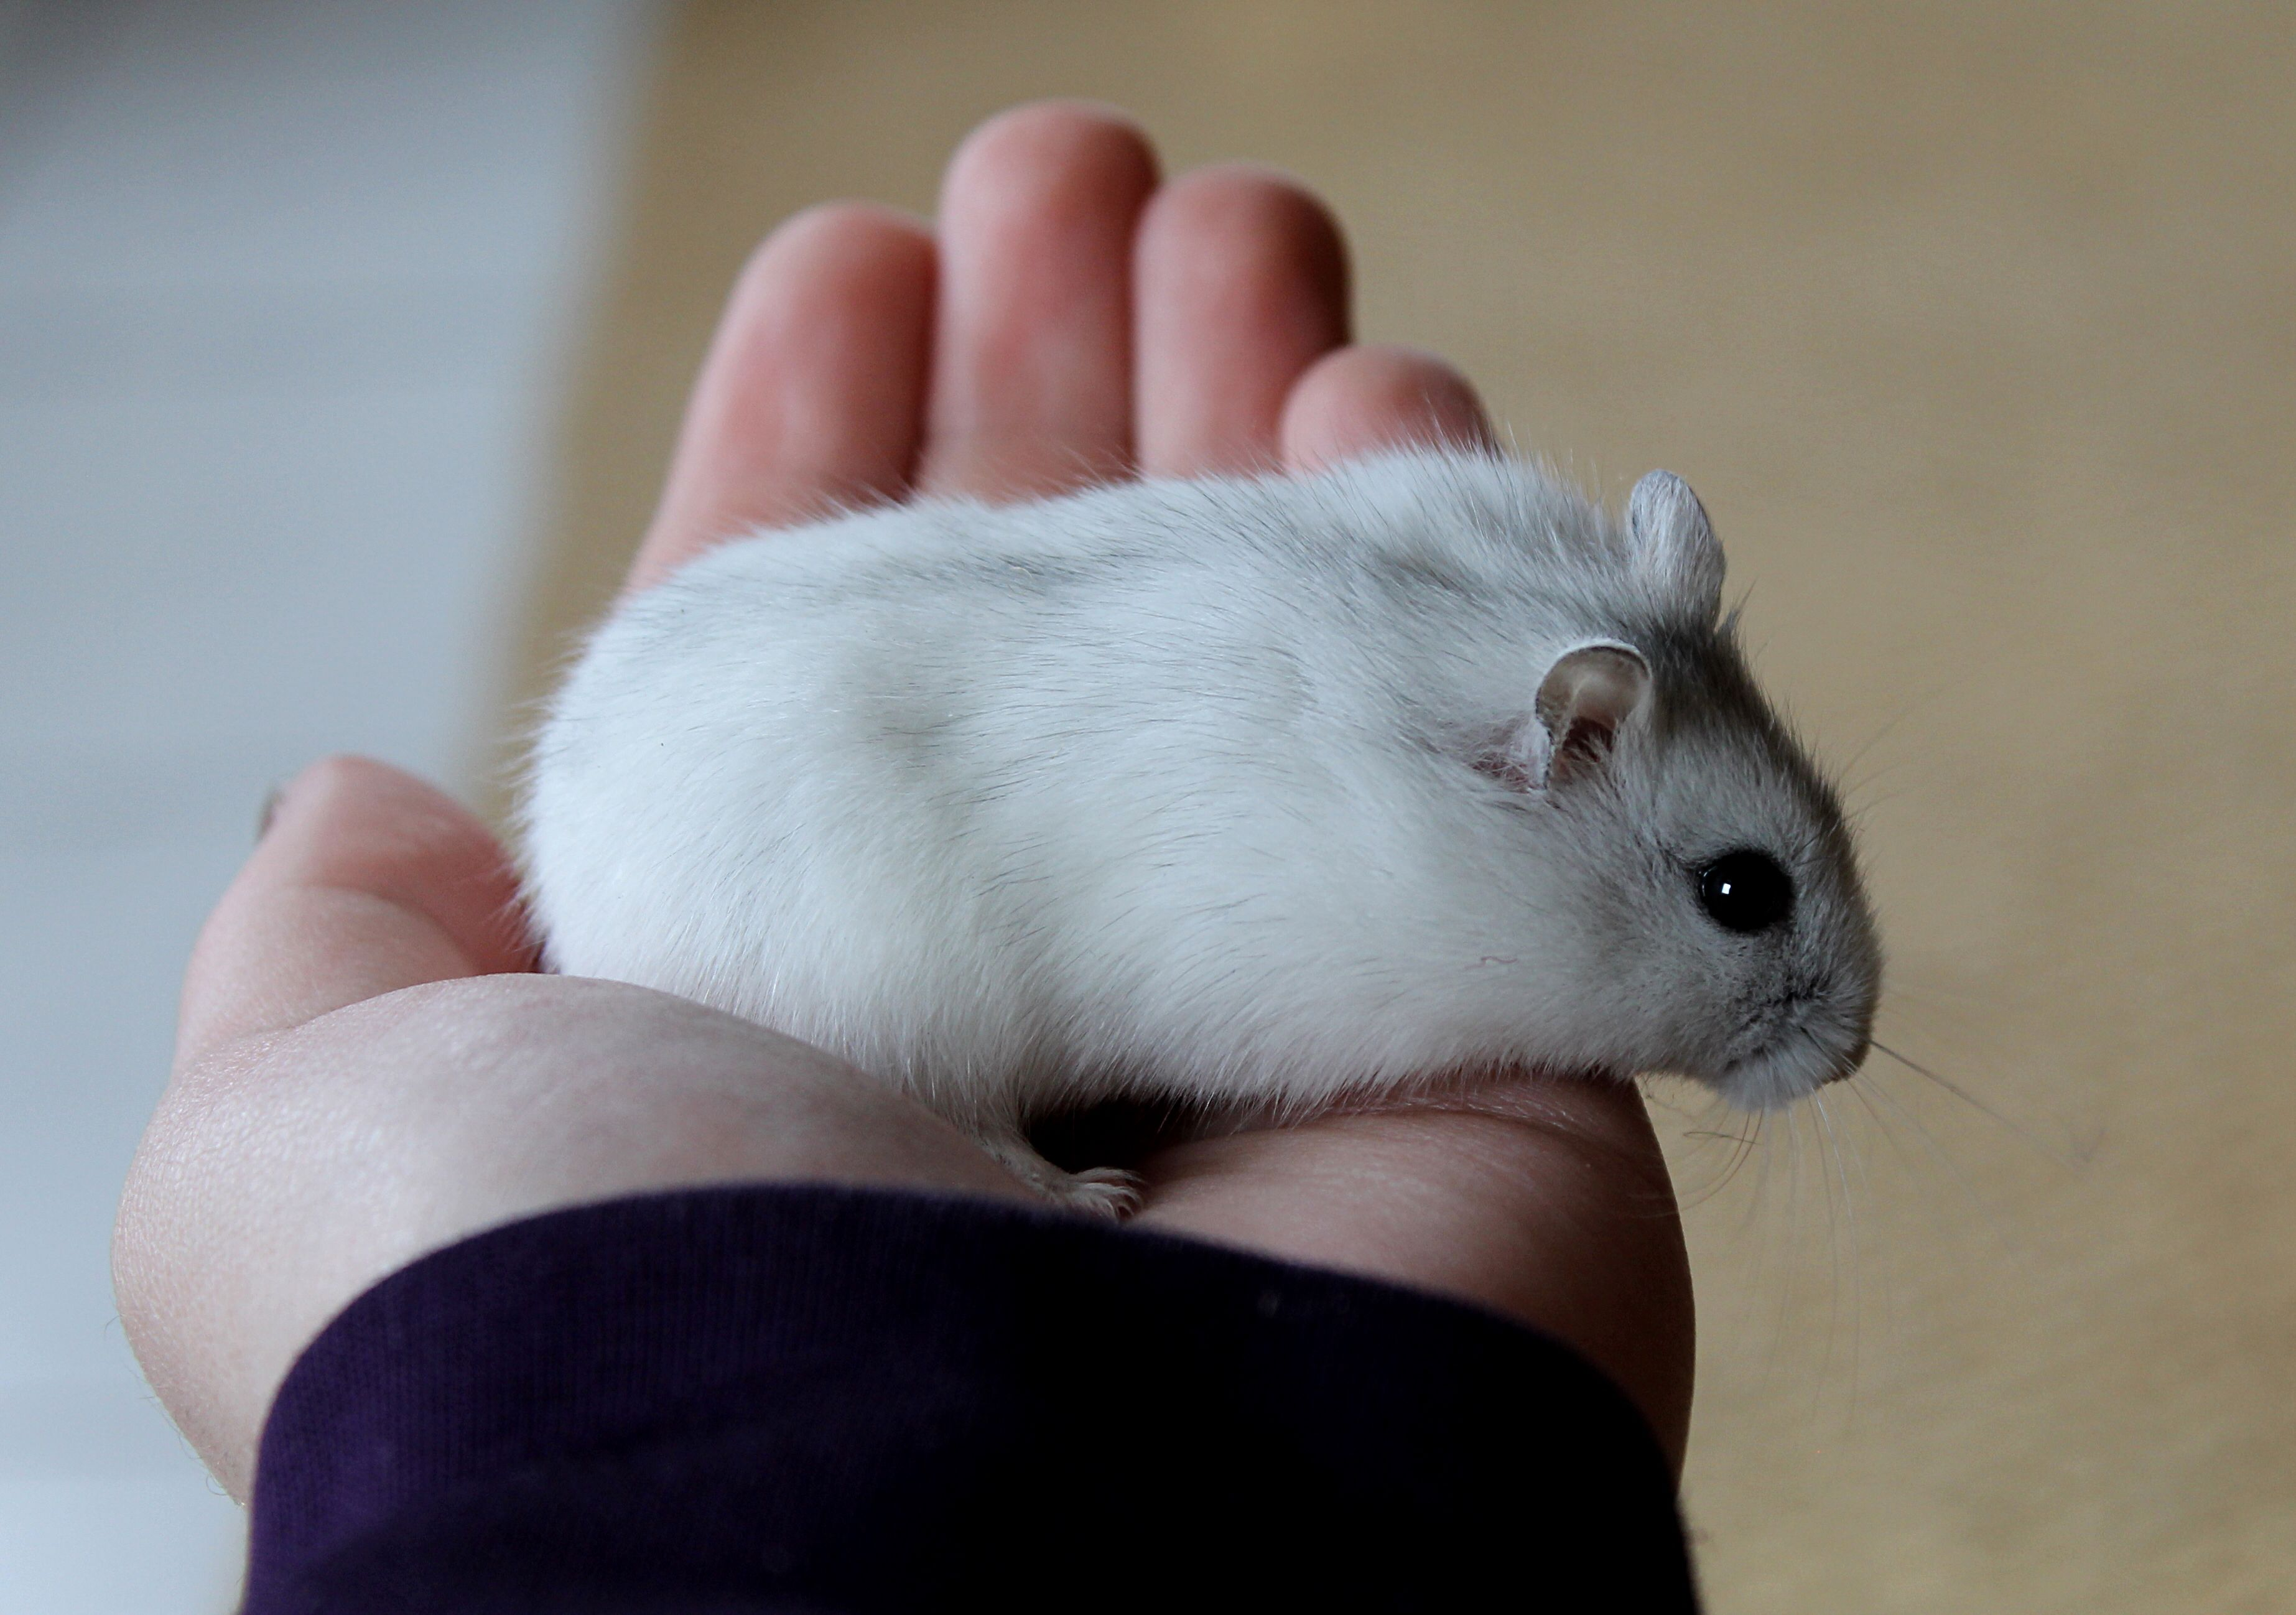 Find out more about dwarf hamsters and how to take care of them Includes facts photos videos and plenty of tips and tricks for dwarf hamster owners